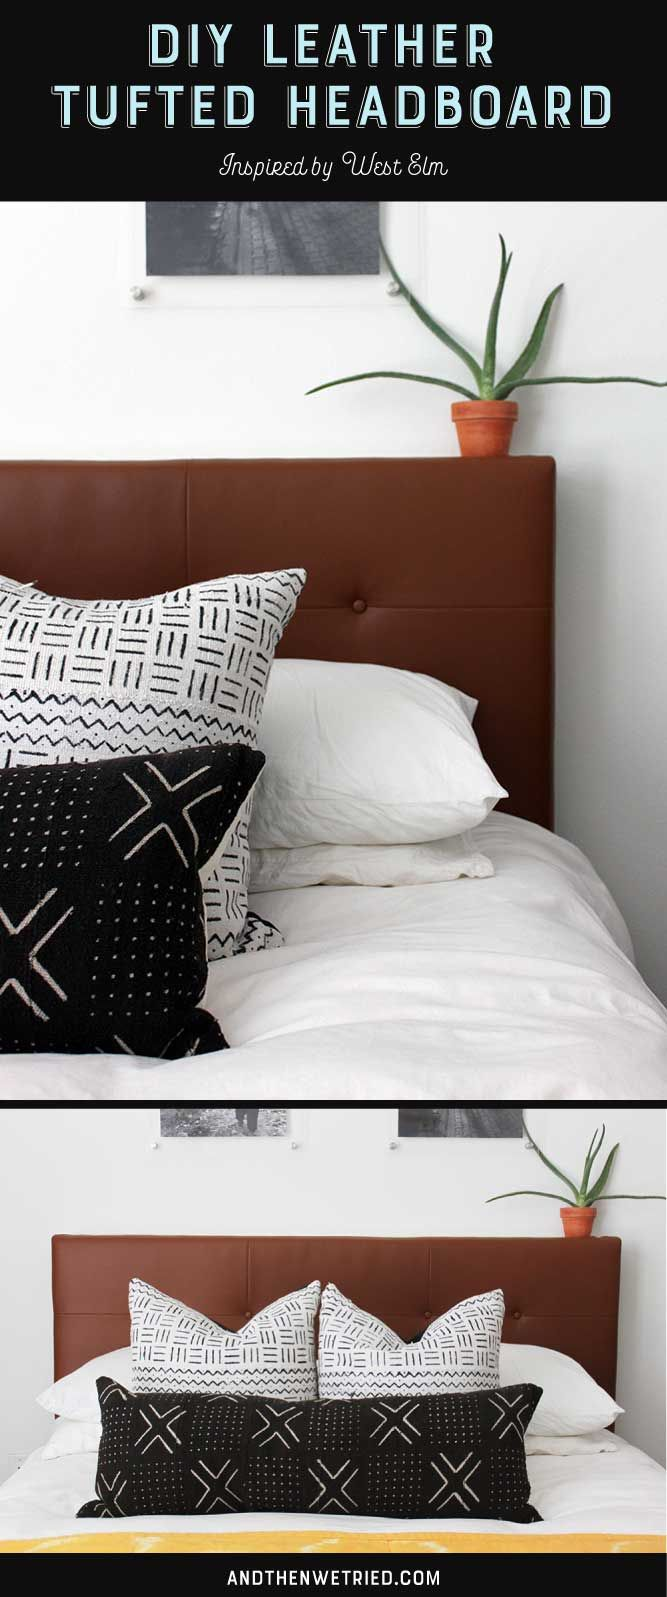 See the full DIY to create your own West Elm inspired Leather Tufted Headboard over on andthenwetried.com